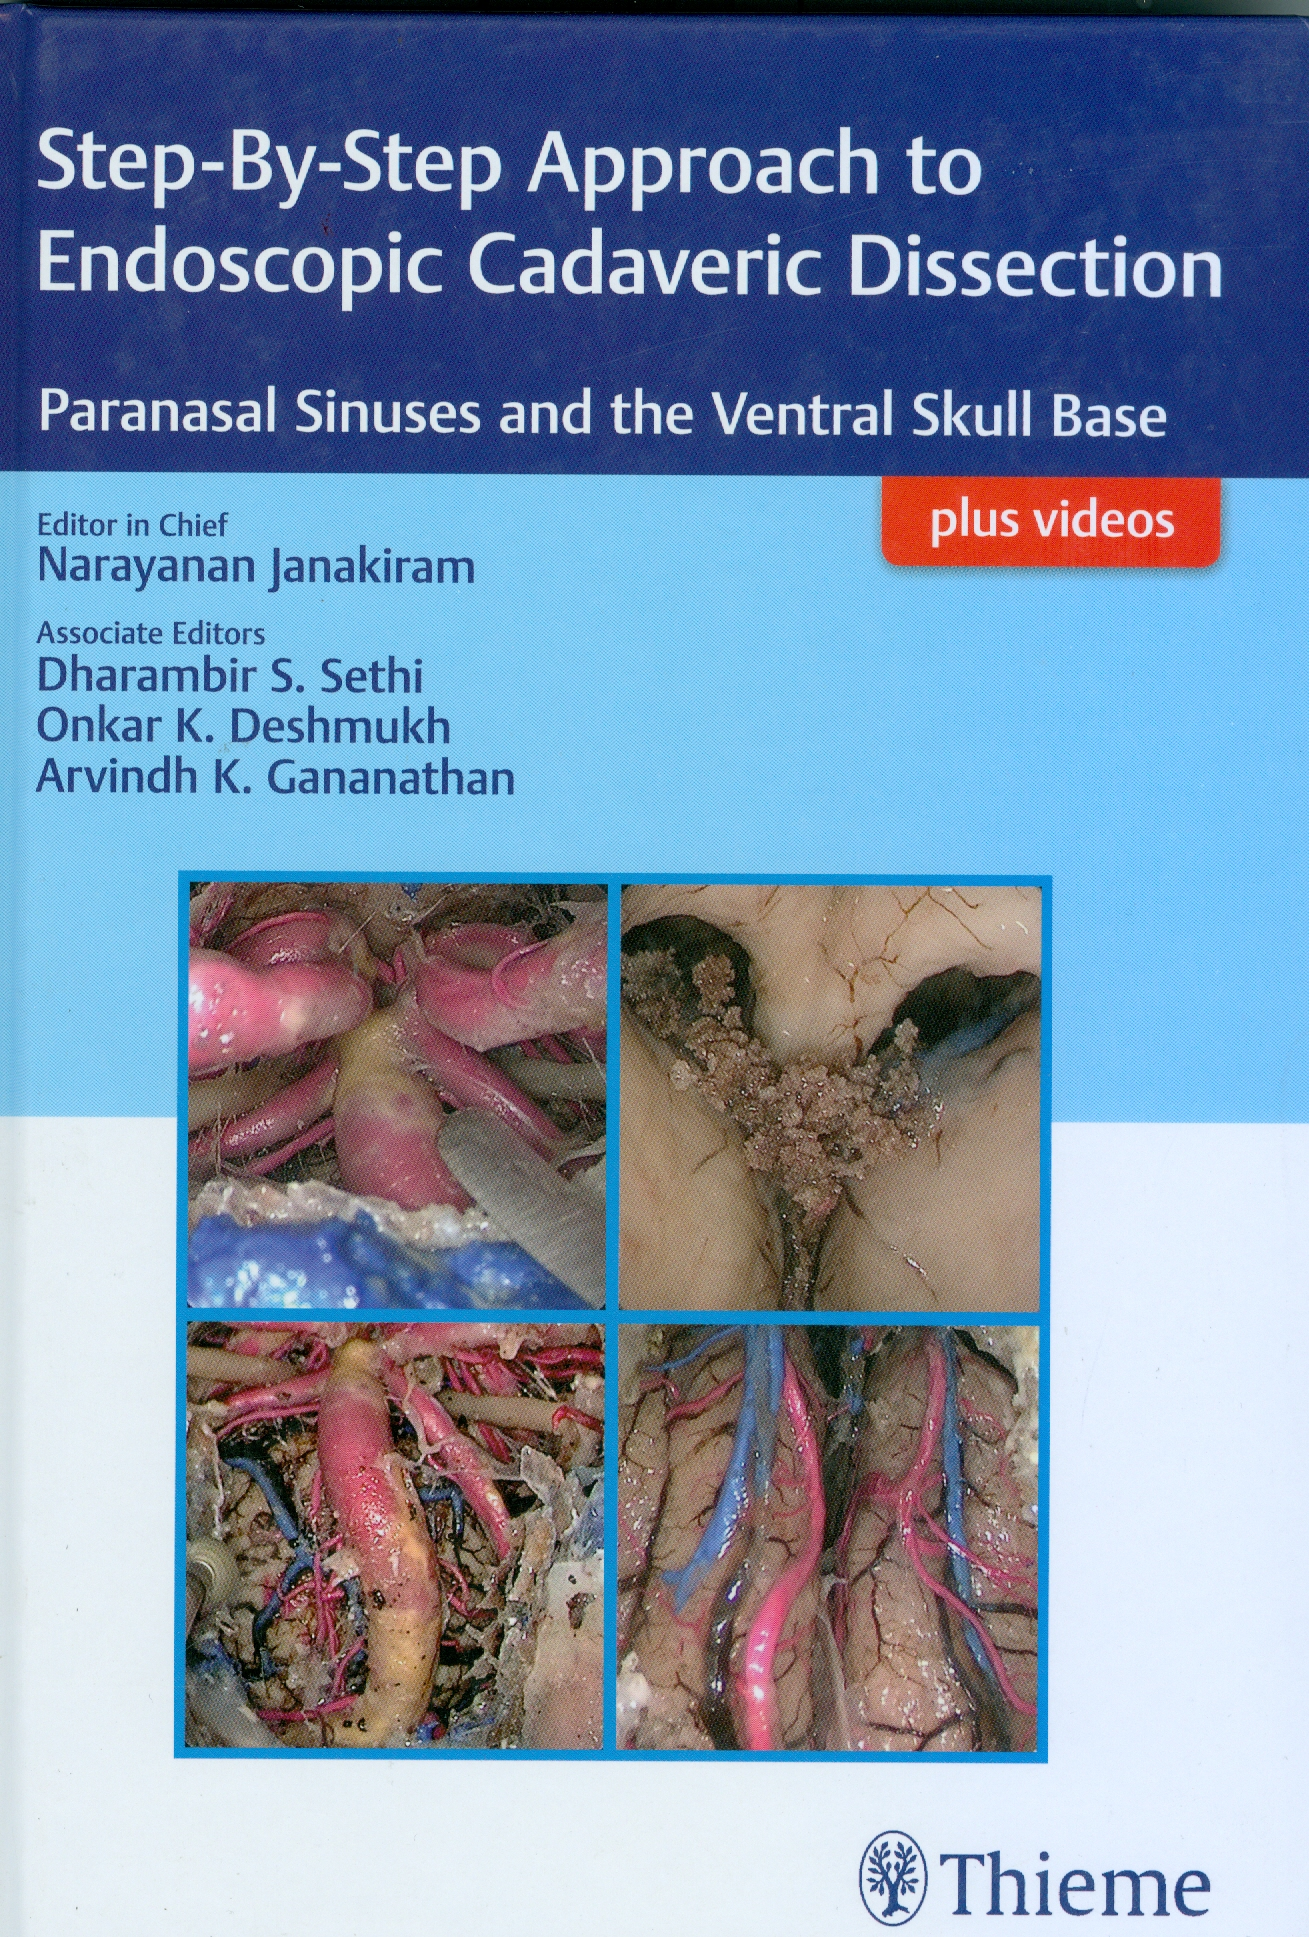 Step-By-Step Approach to Endoscopic Cadaveric Dissection: Paranasal Sinuses and the Ventral Skull Base